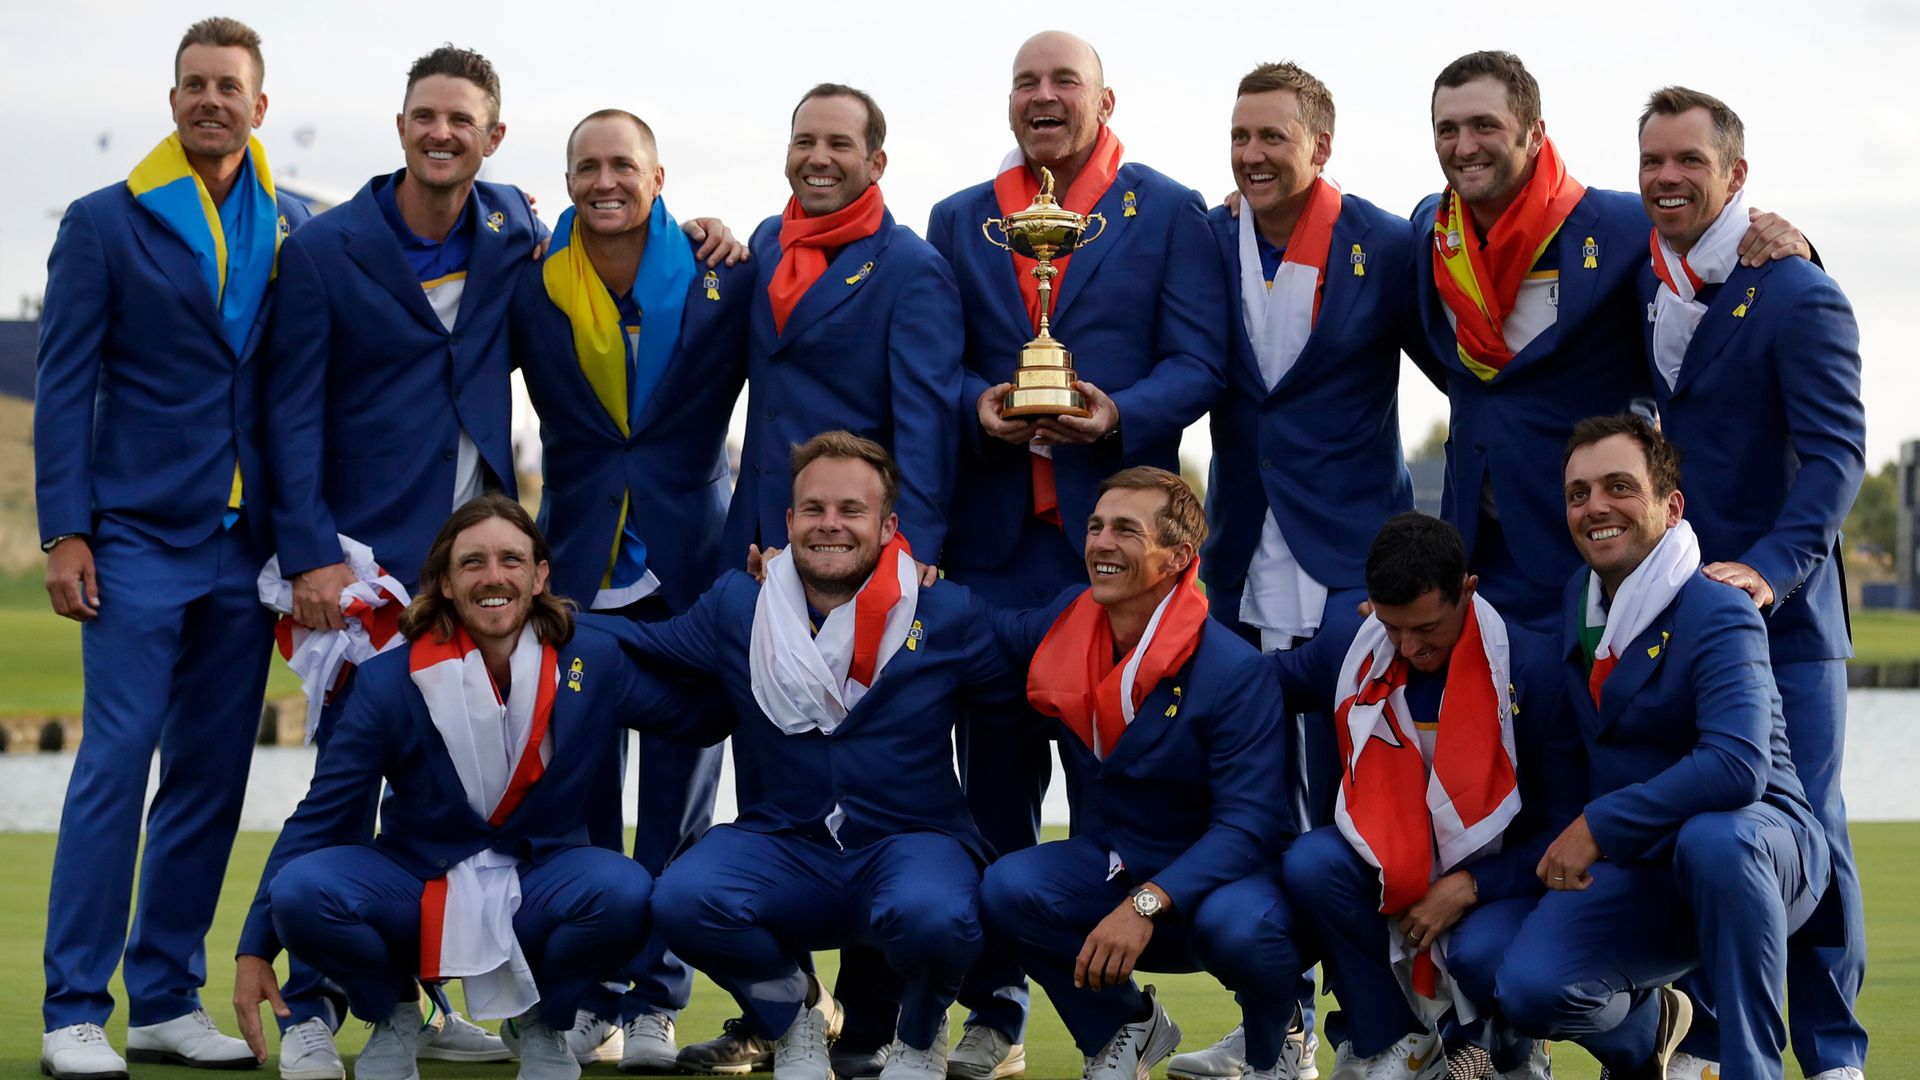 'Changing of the guard for Team Europe?'